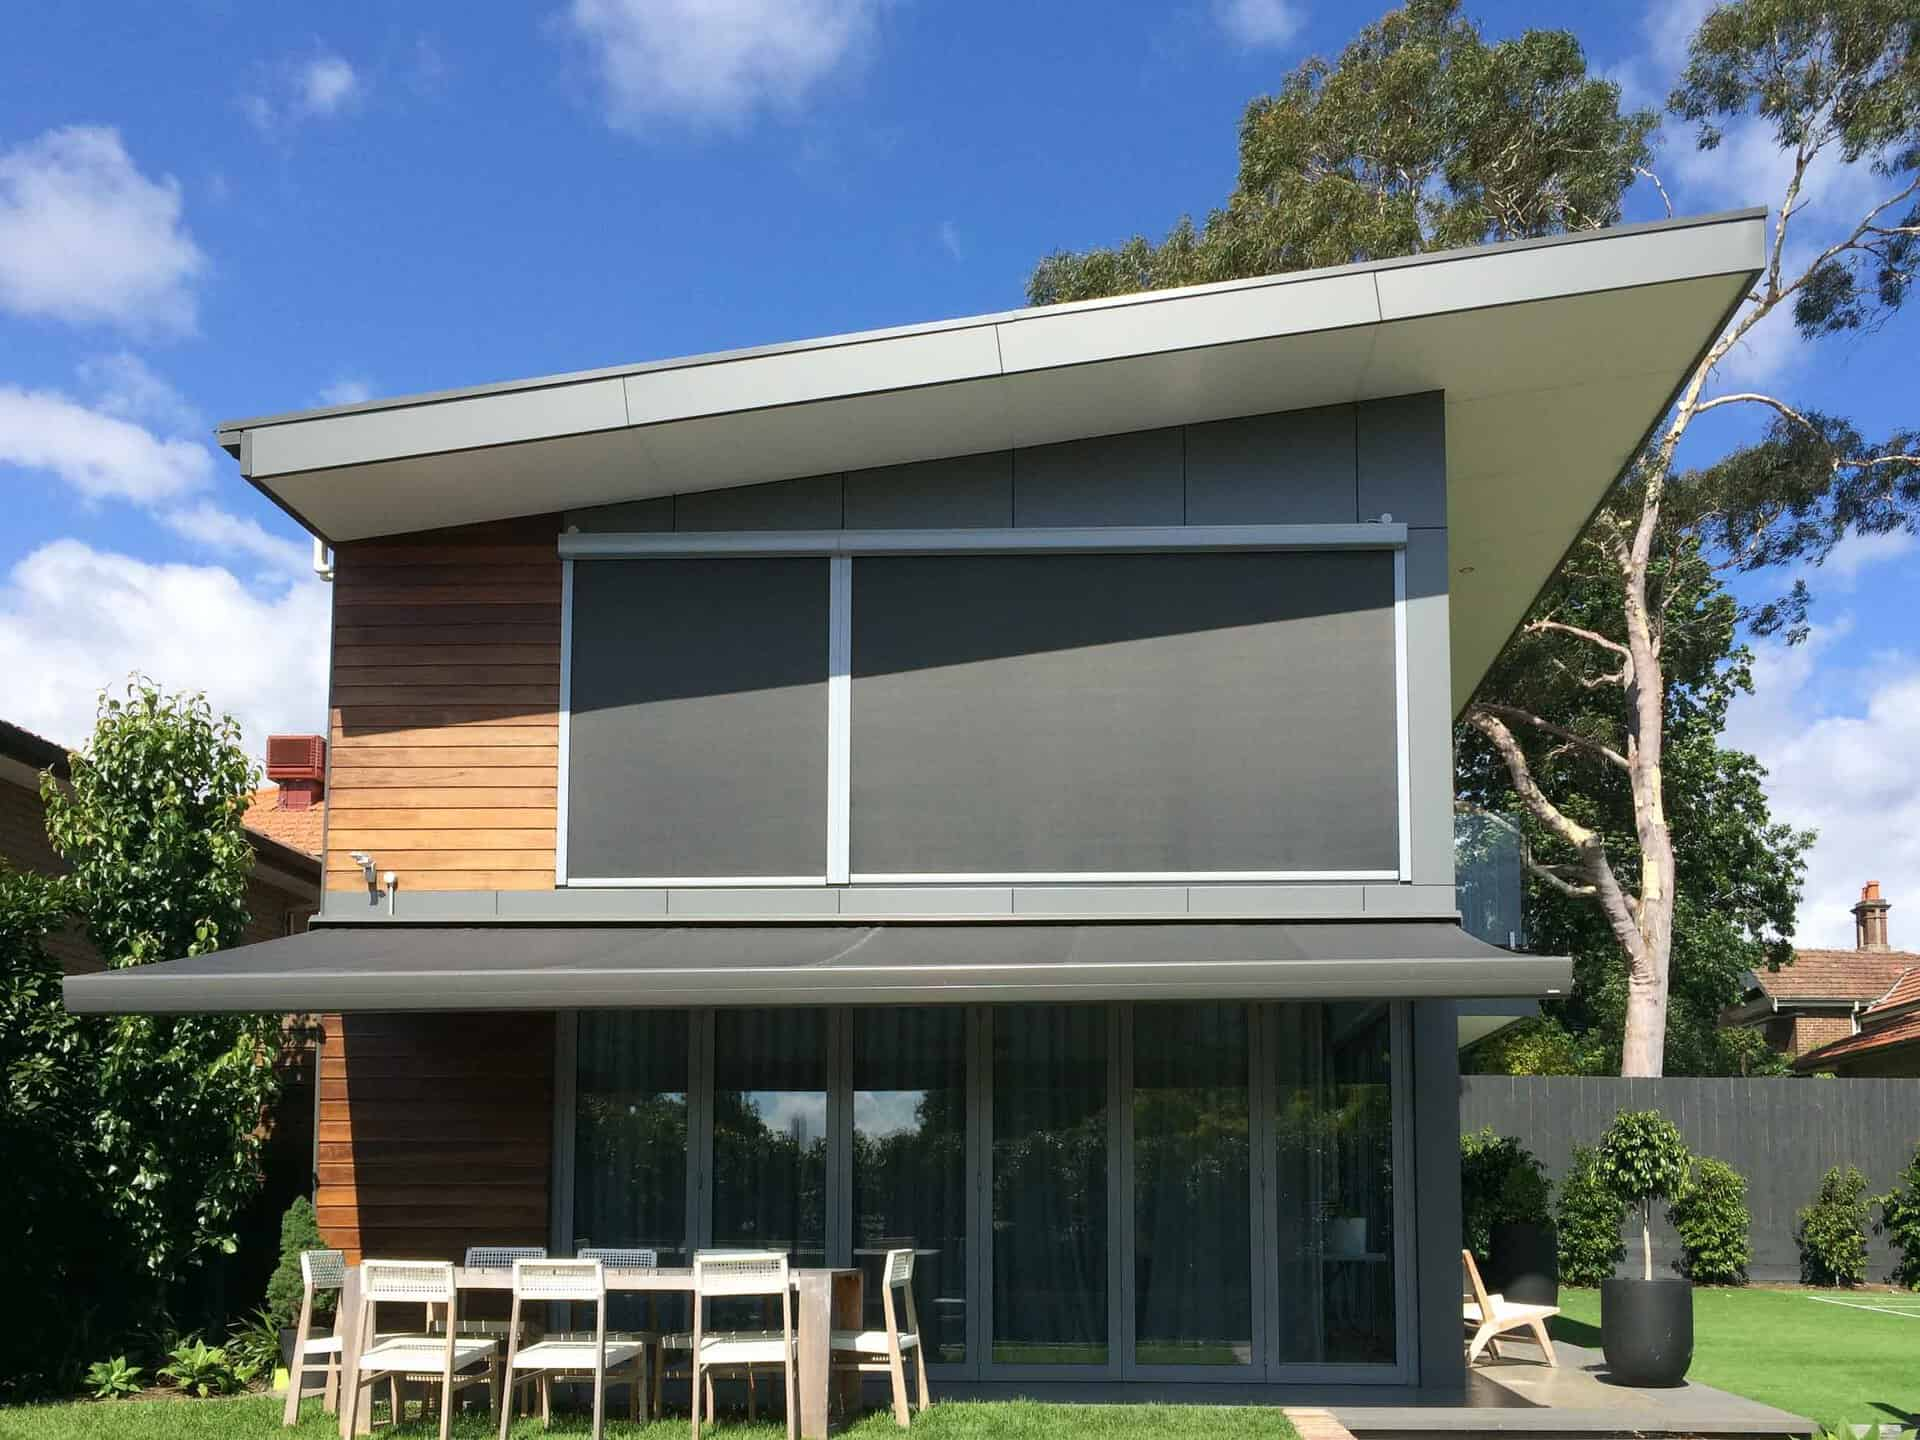 Motorised External Blinds and Awning on Melbourne home